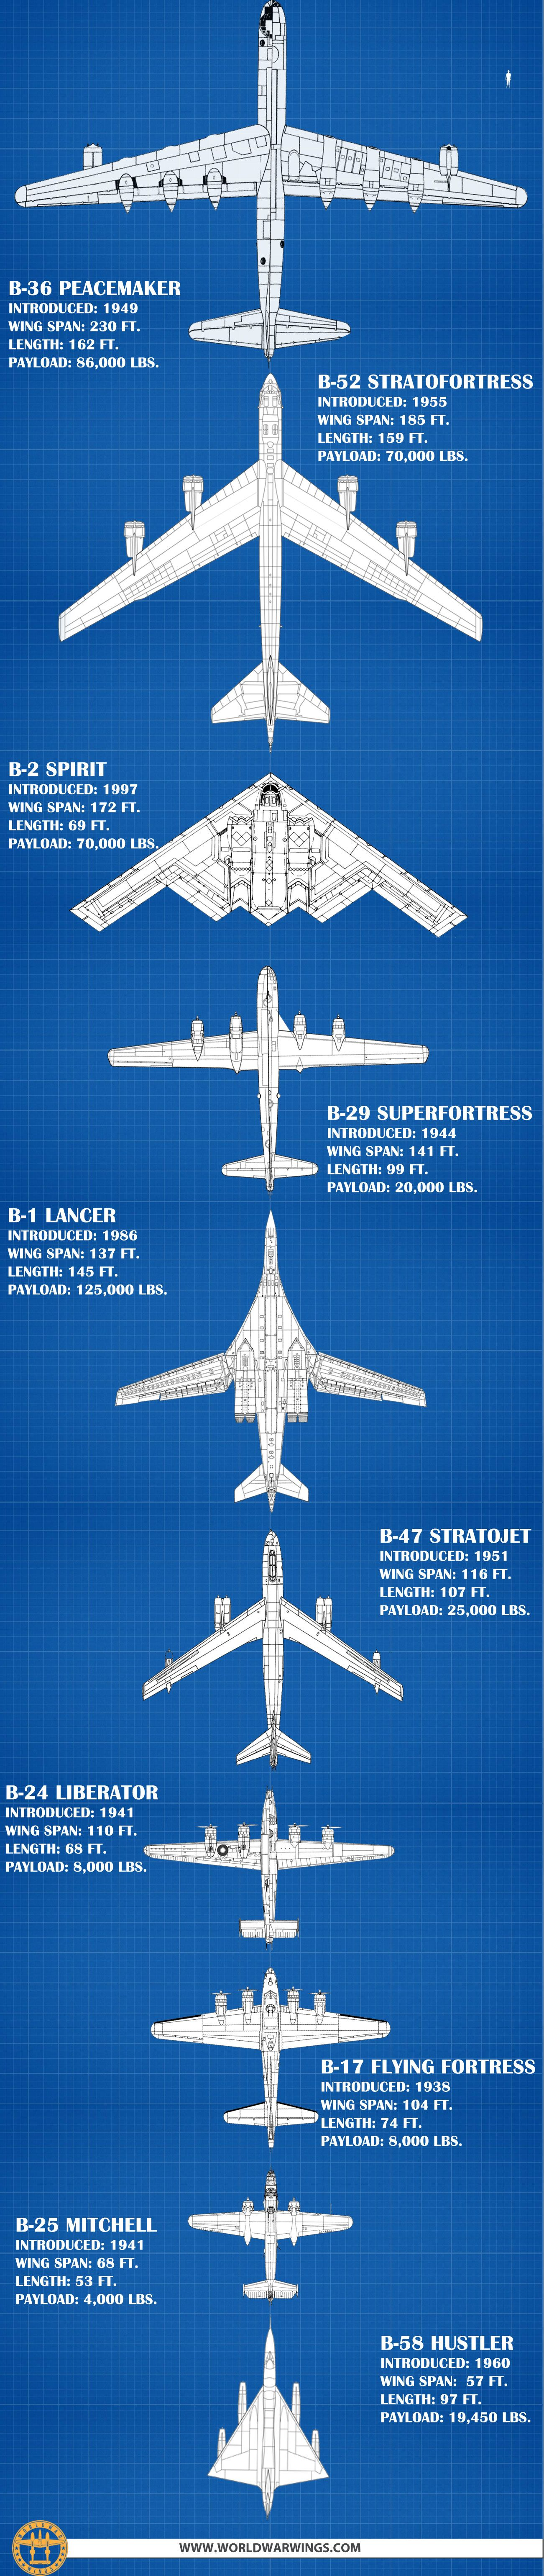 Bombers size comparison and warload capacities the bone has the most at 125k lbs